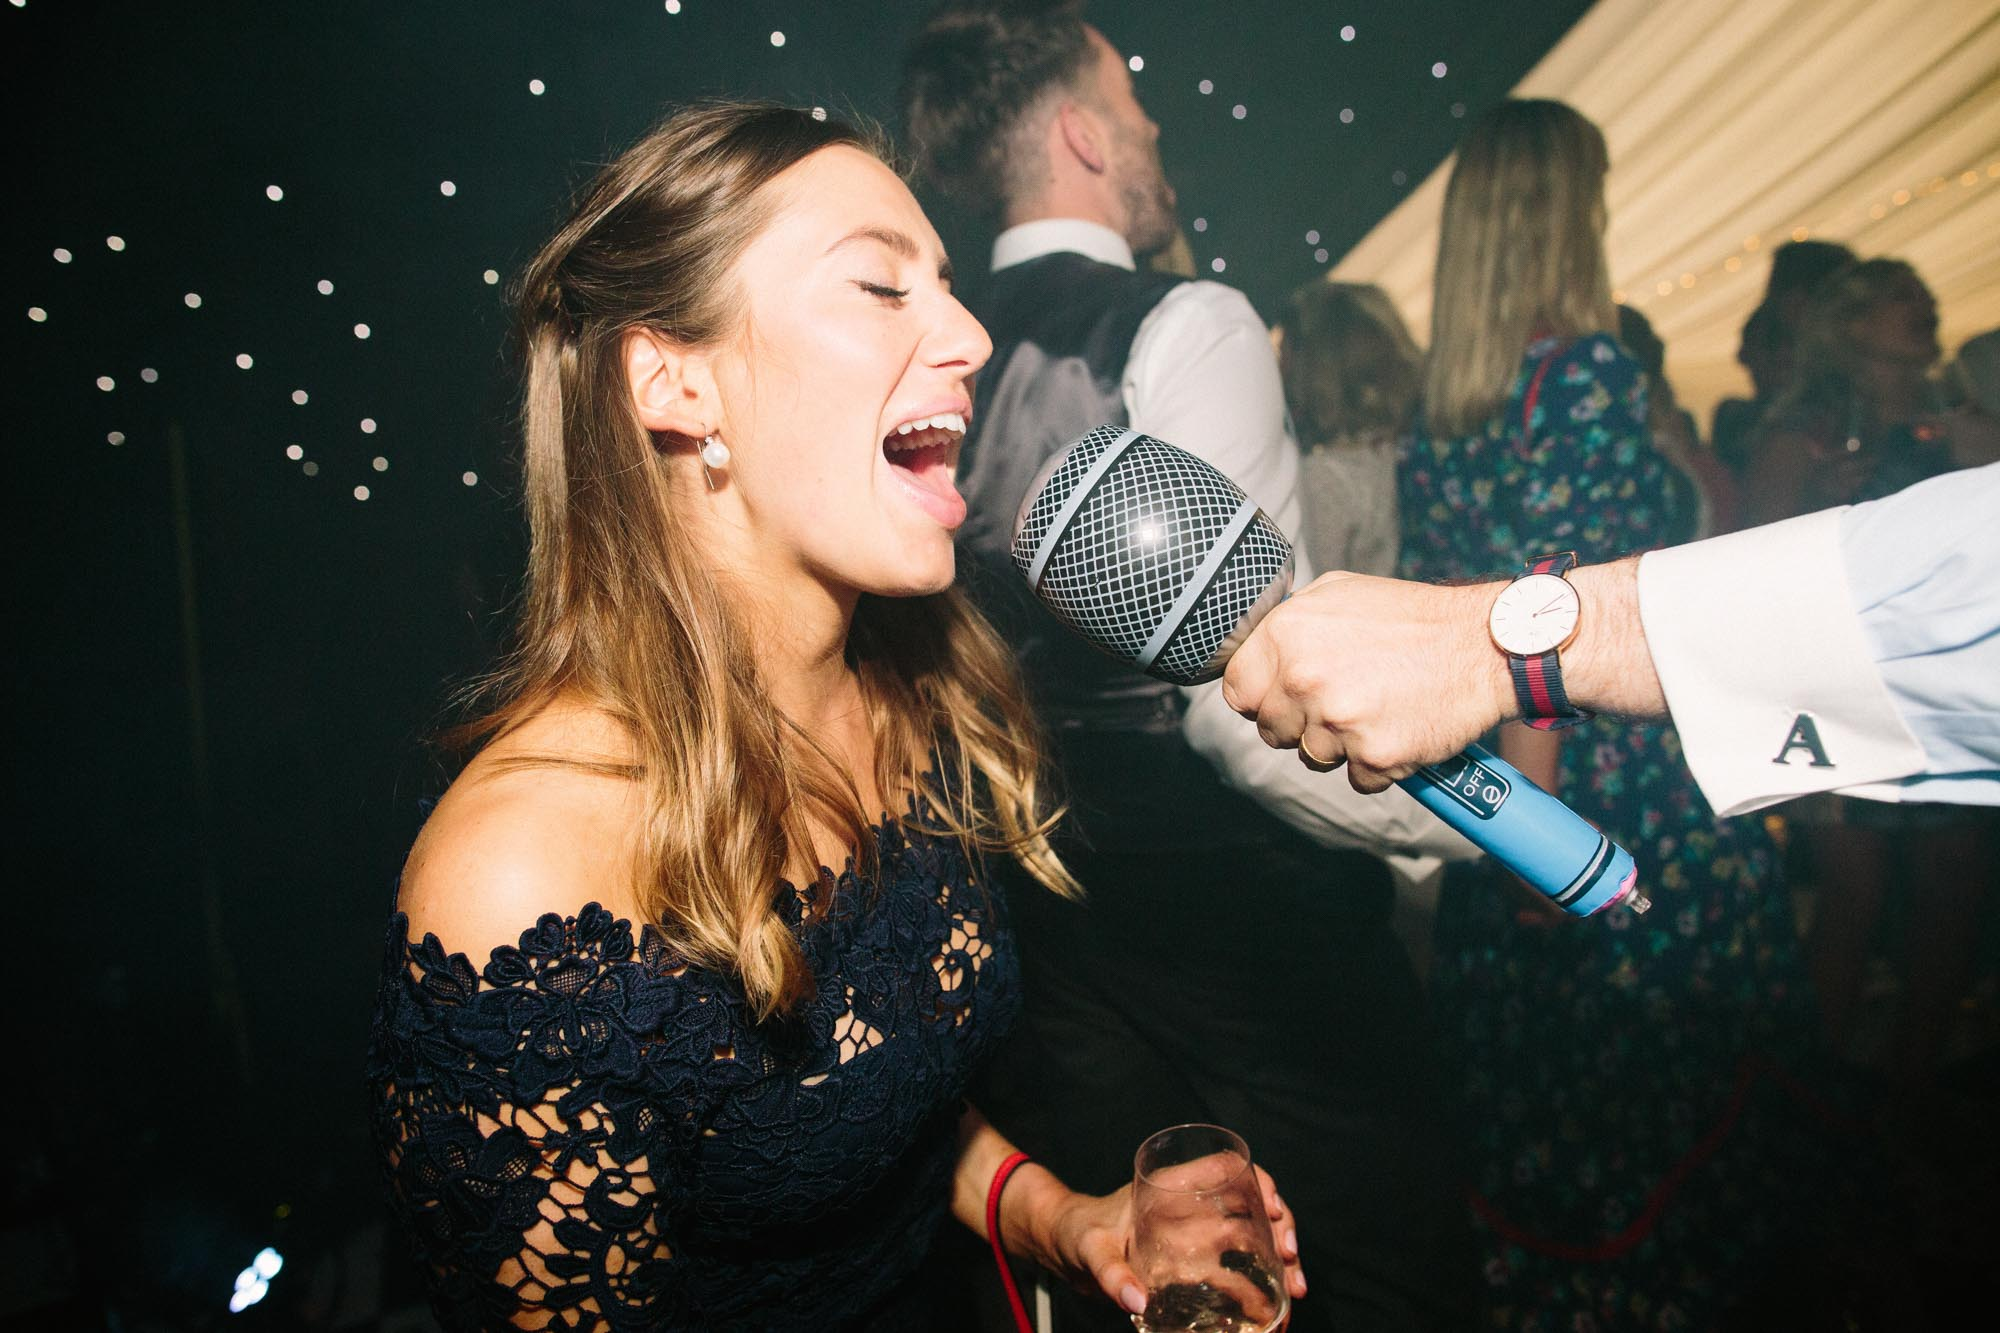 Wedding guest singing into inflatable microphone